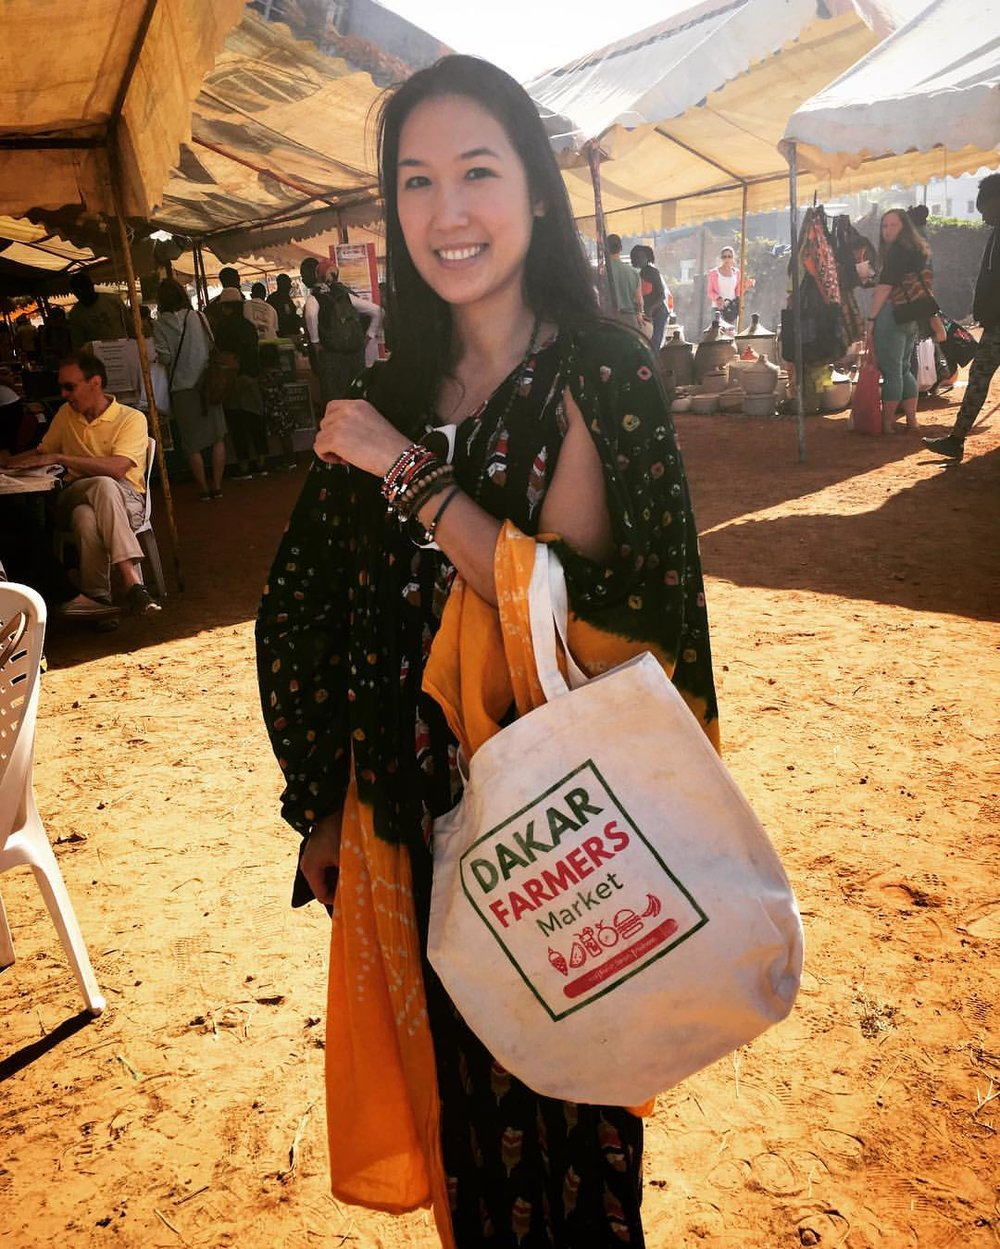 My awesome Dakar Farmers Market souvenir canvas tote bag.